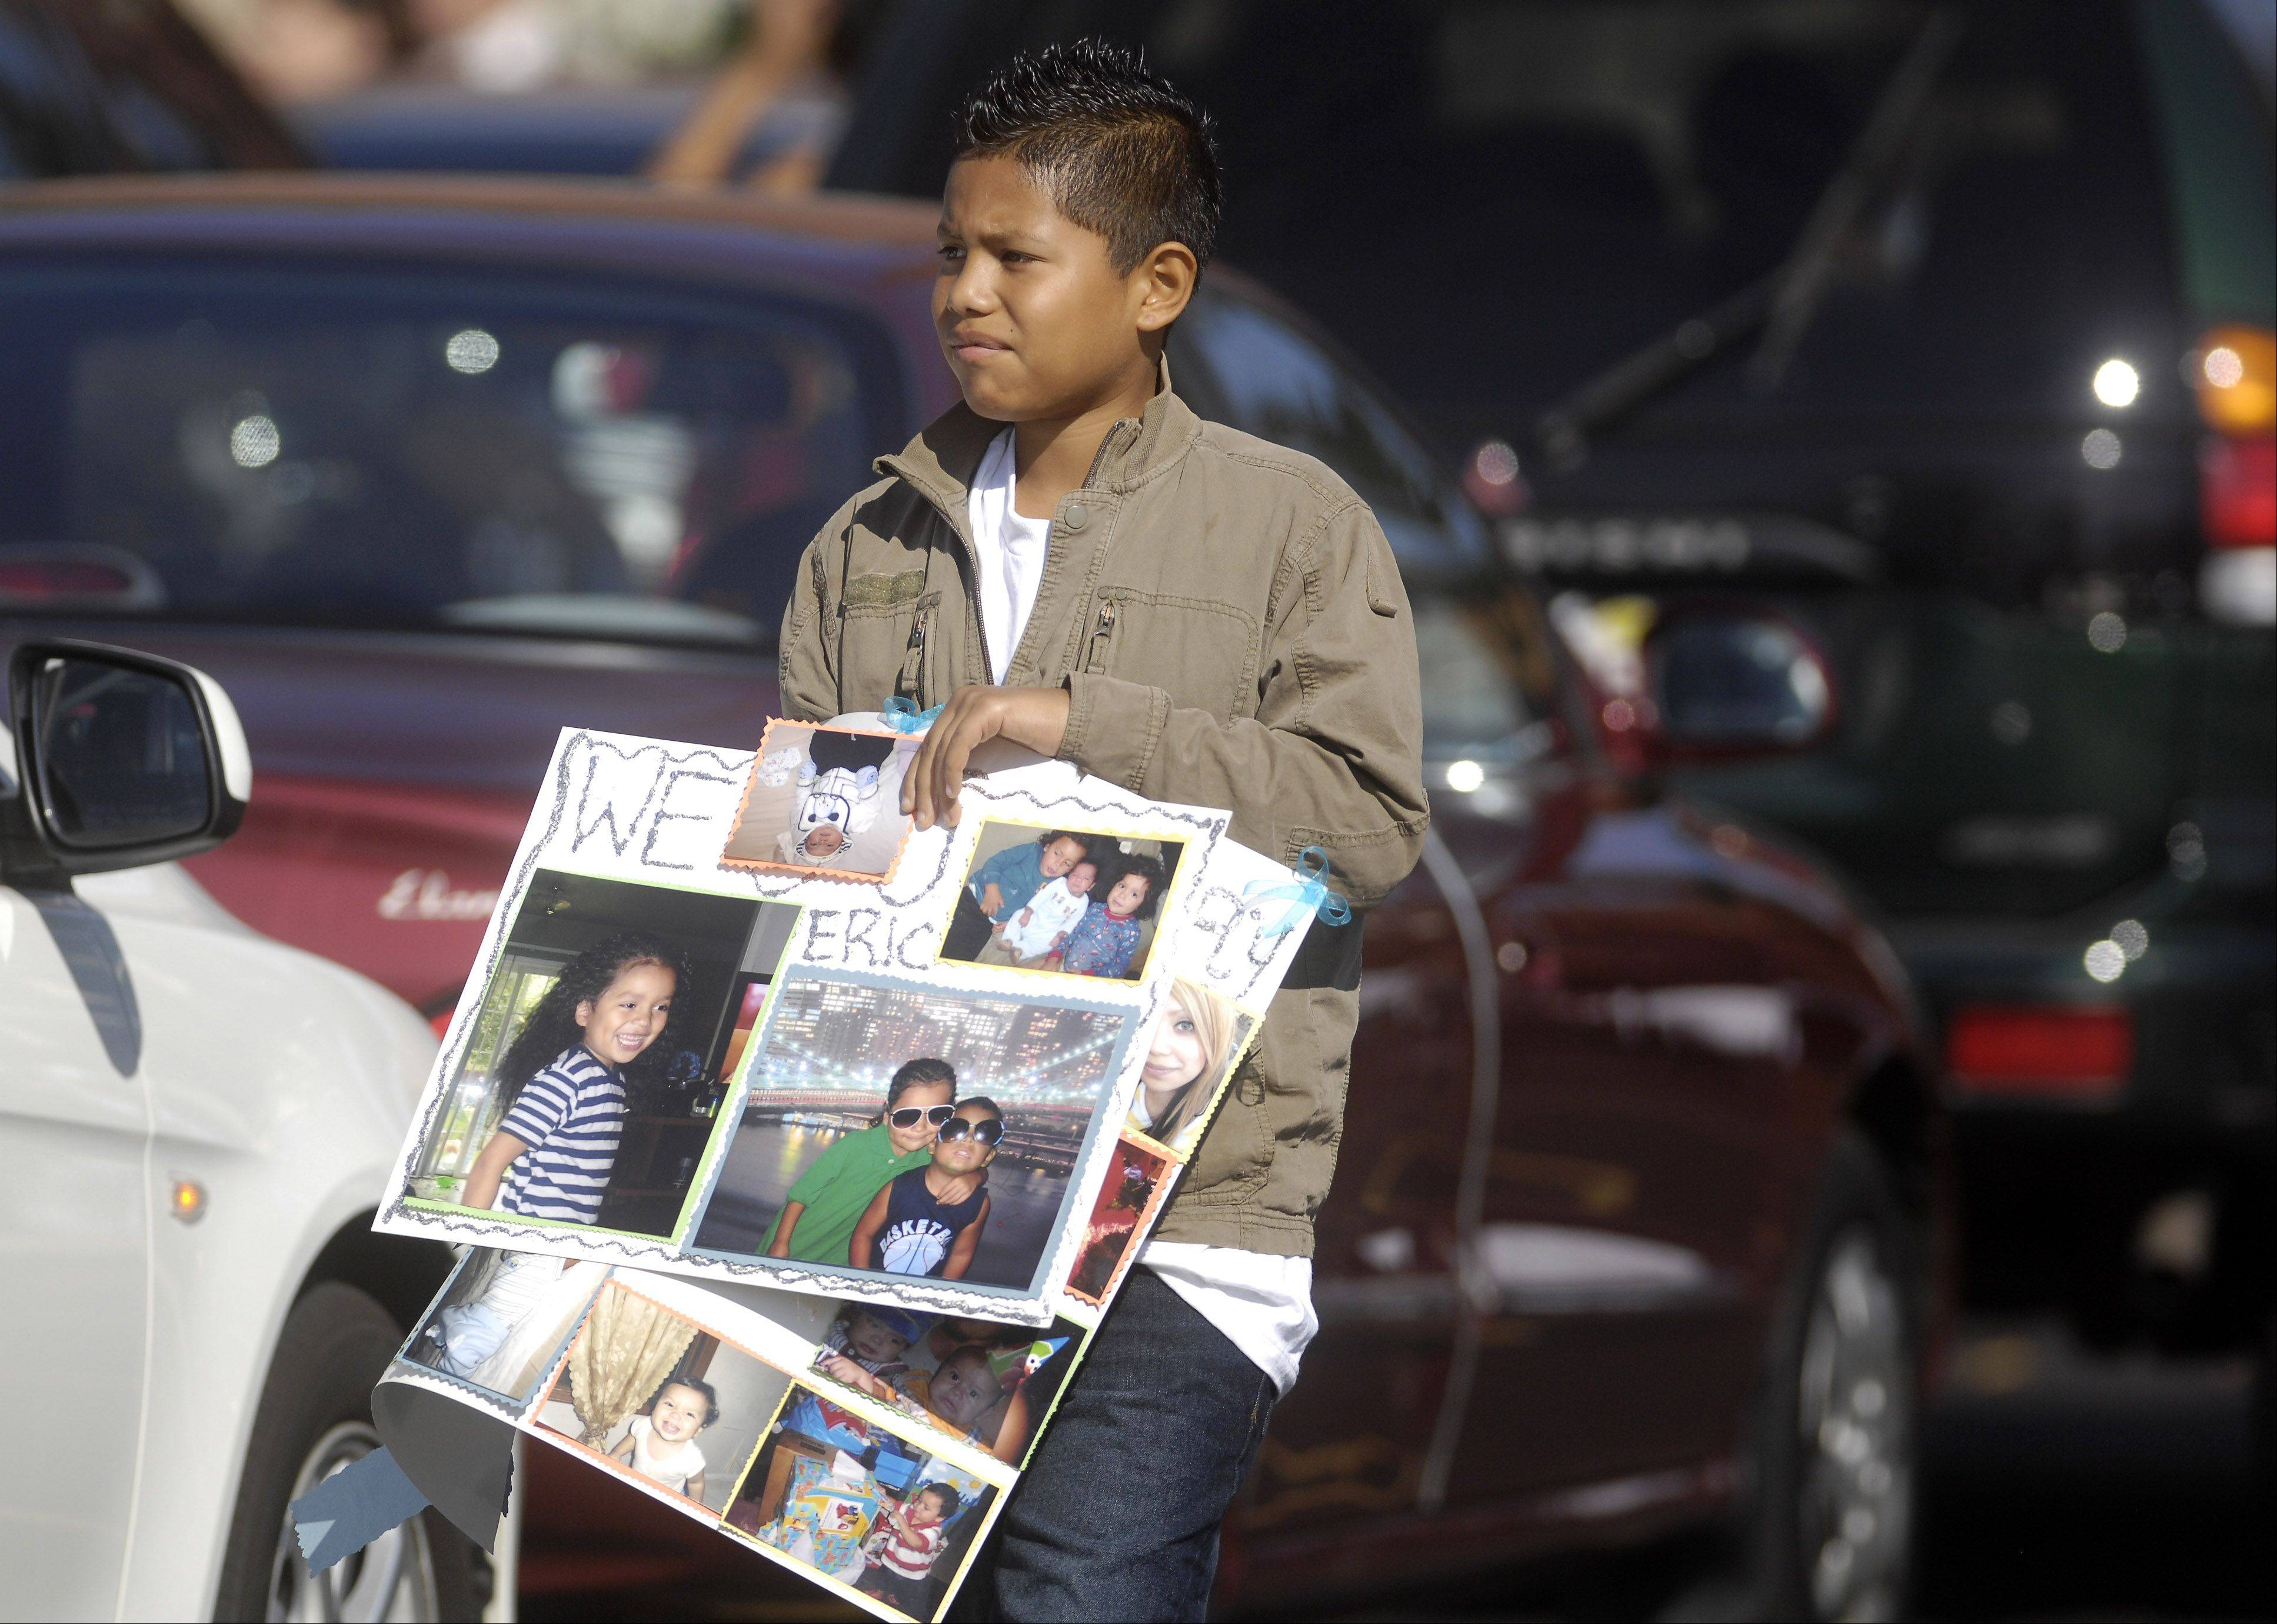 A boy carries a collage of photos Wednesday following the funeral of Eric M. Galarza Jr. at St. Joseph Catholic Church in Elgin